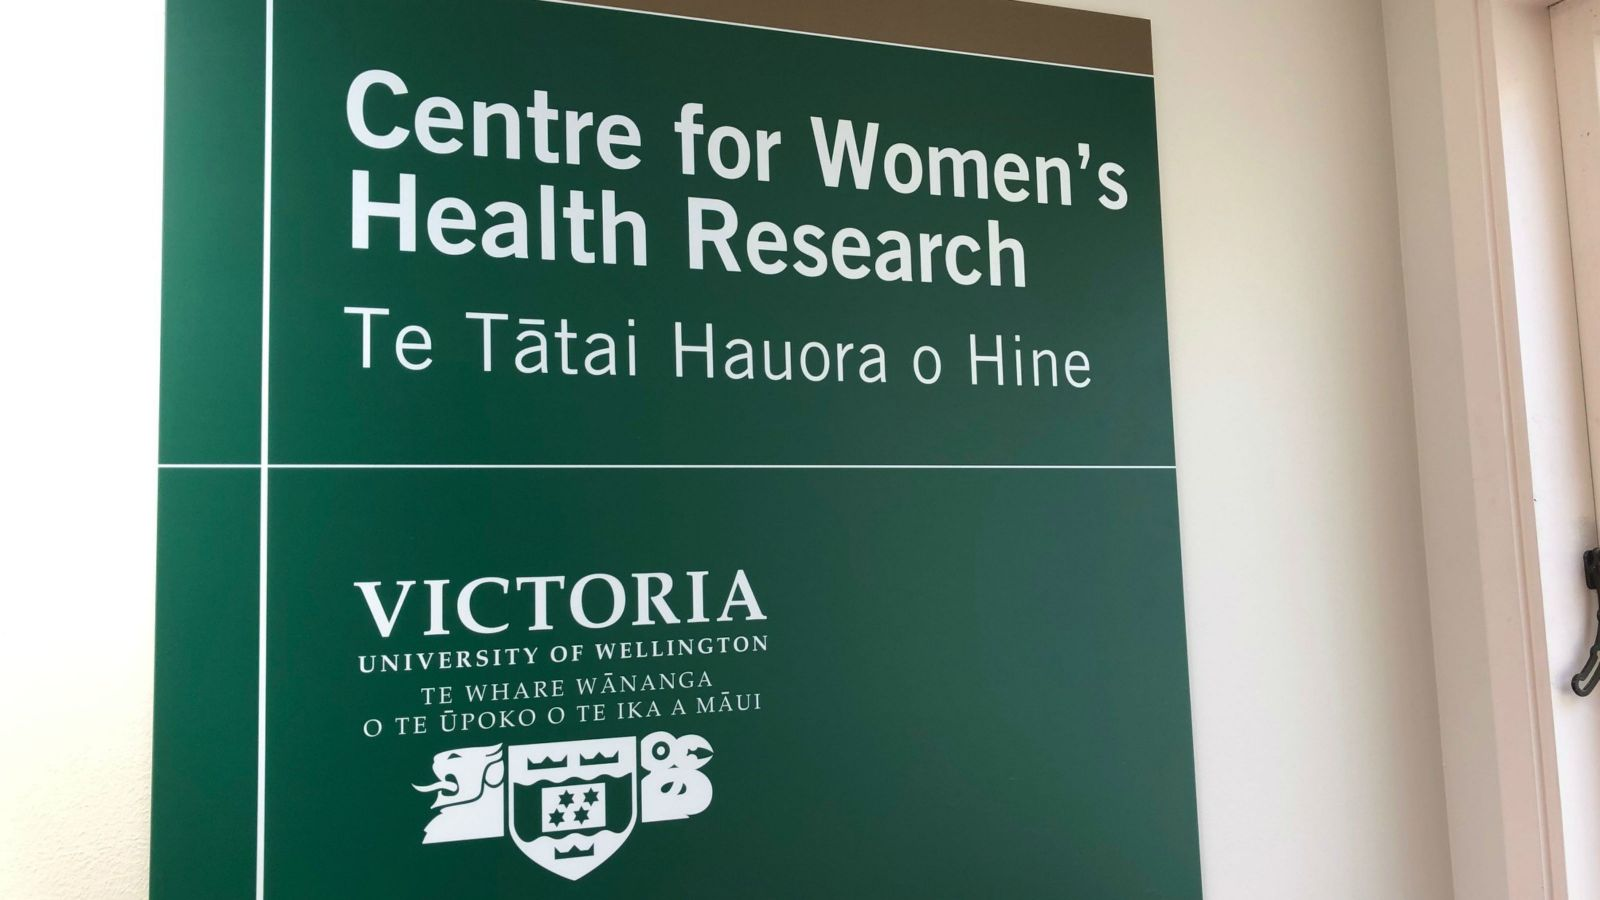 The sign for the Centre for Women's Health Research at Victoria University of Wellington